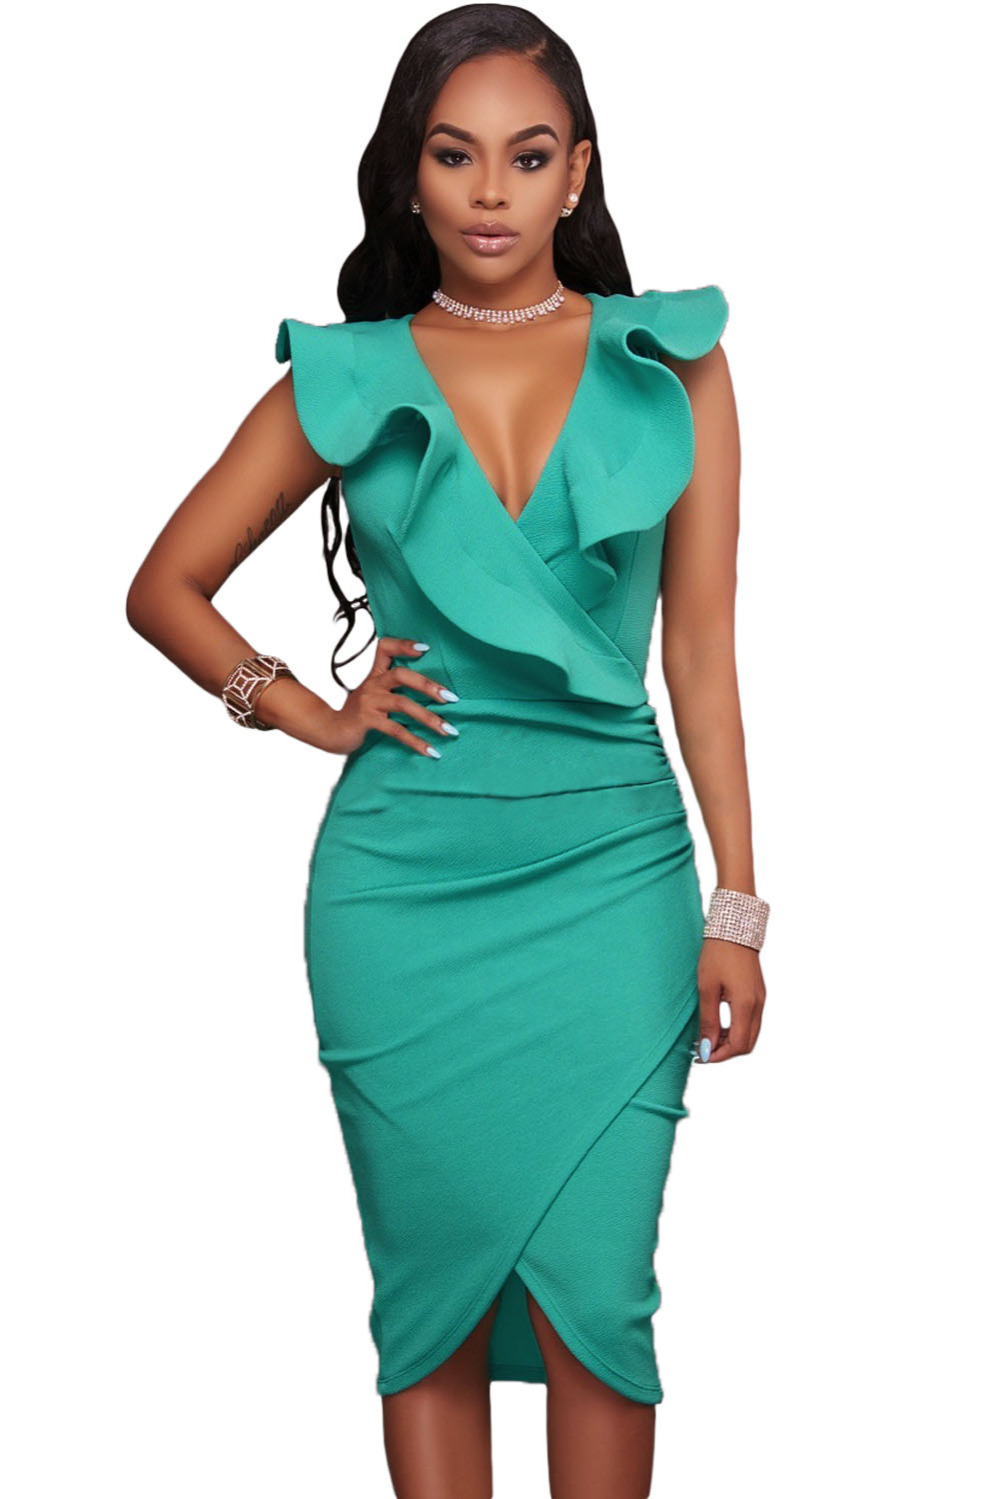 Women's Fashion Turquoise Black Ruffle V Neck Midi Dress ...